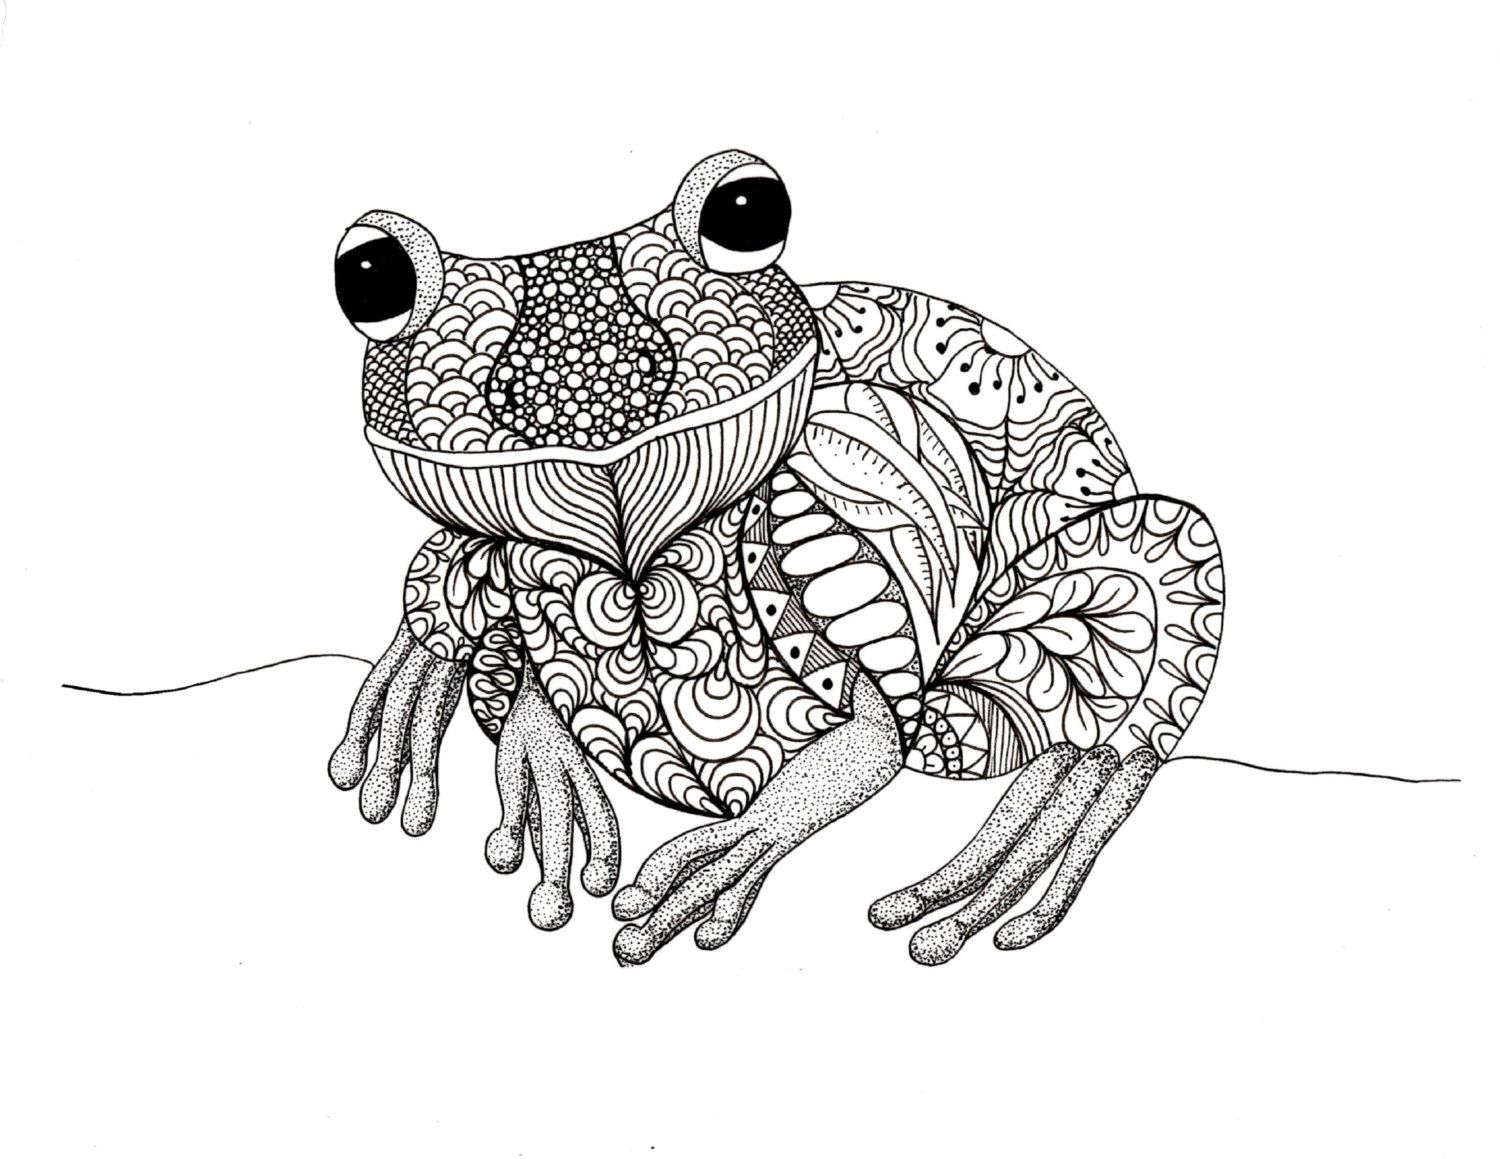 Doodle Frog Colouring Page With Images Frog Coloring Pages Animal Coloring Pages Adult Coloring Animals